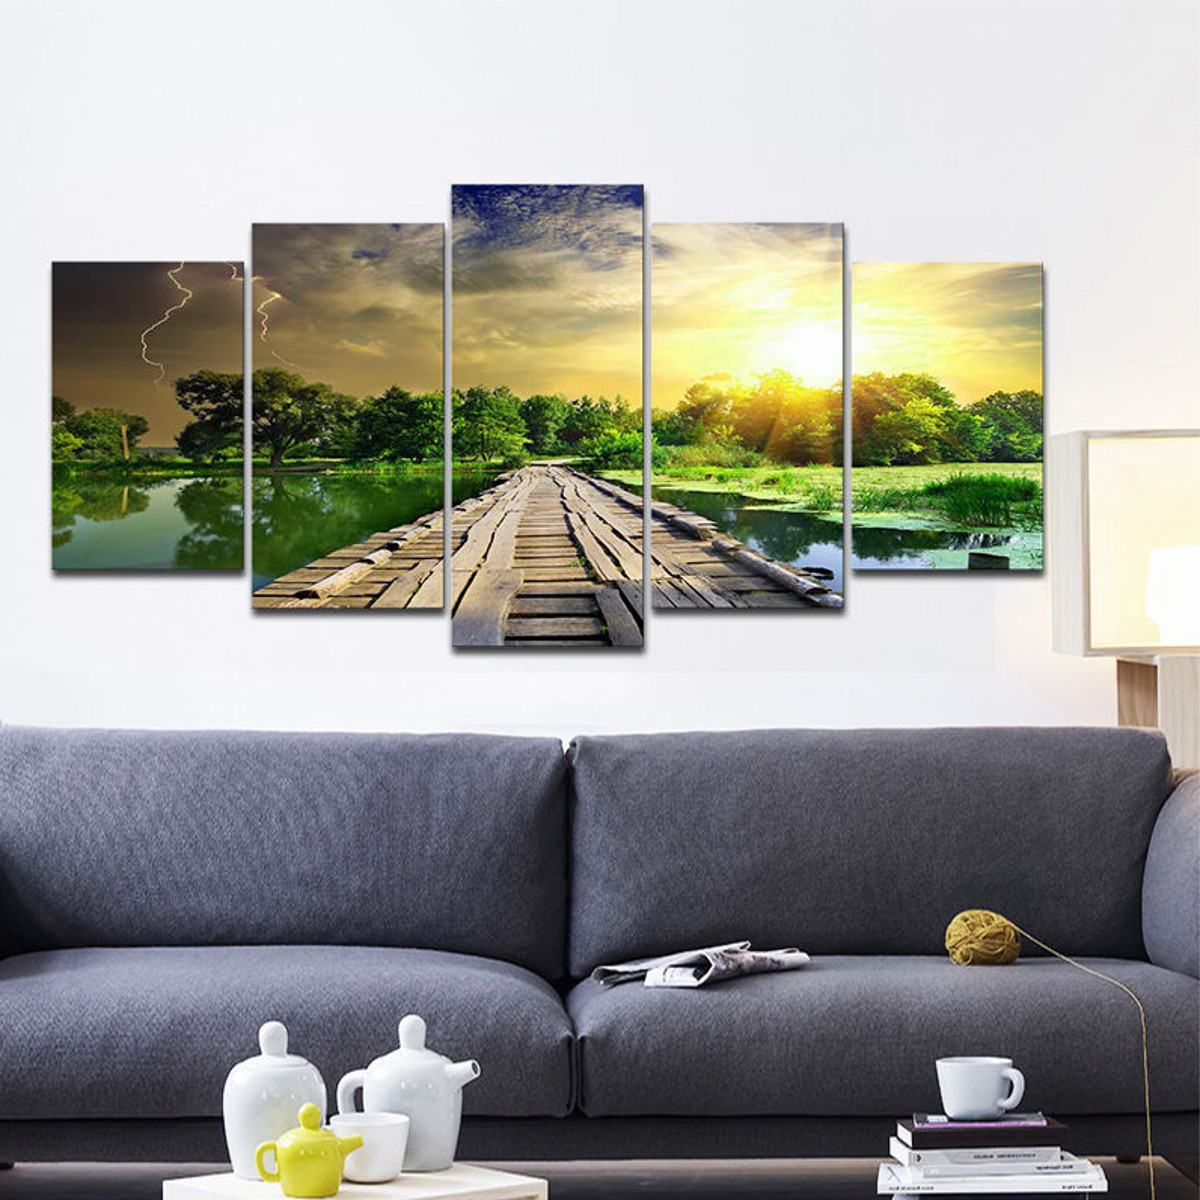 5Pcs Modern Art Printing Lake Landscape Poster Canvas Painting Home Wall Decor